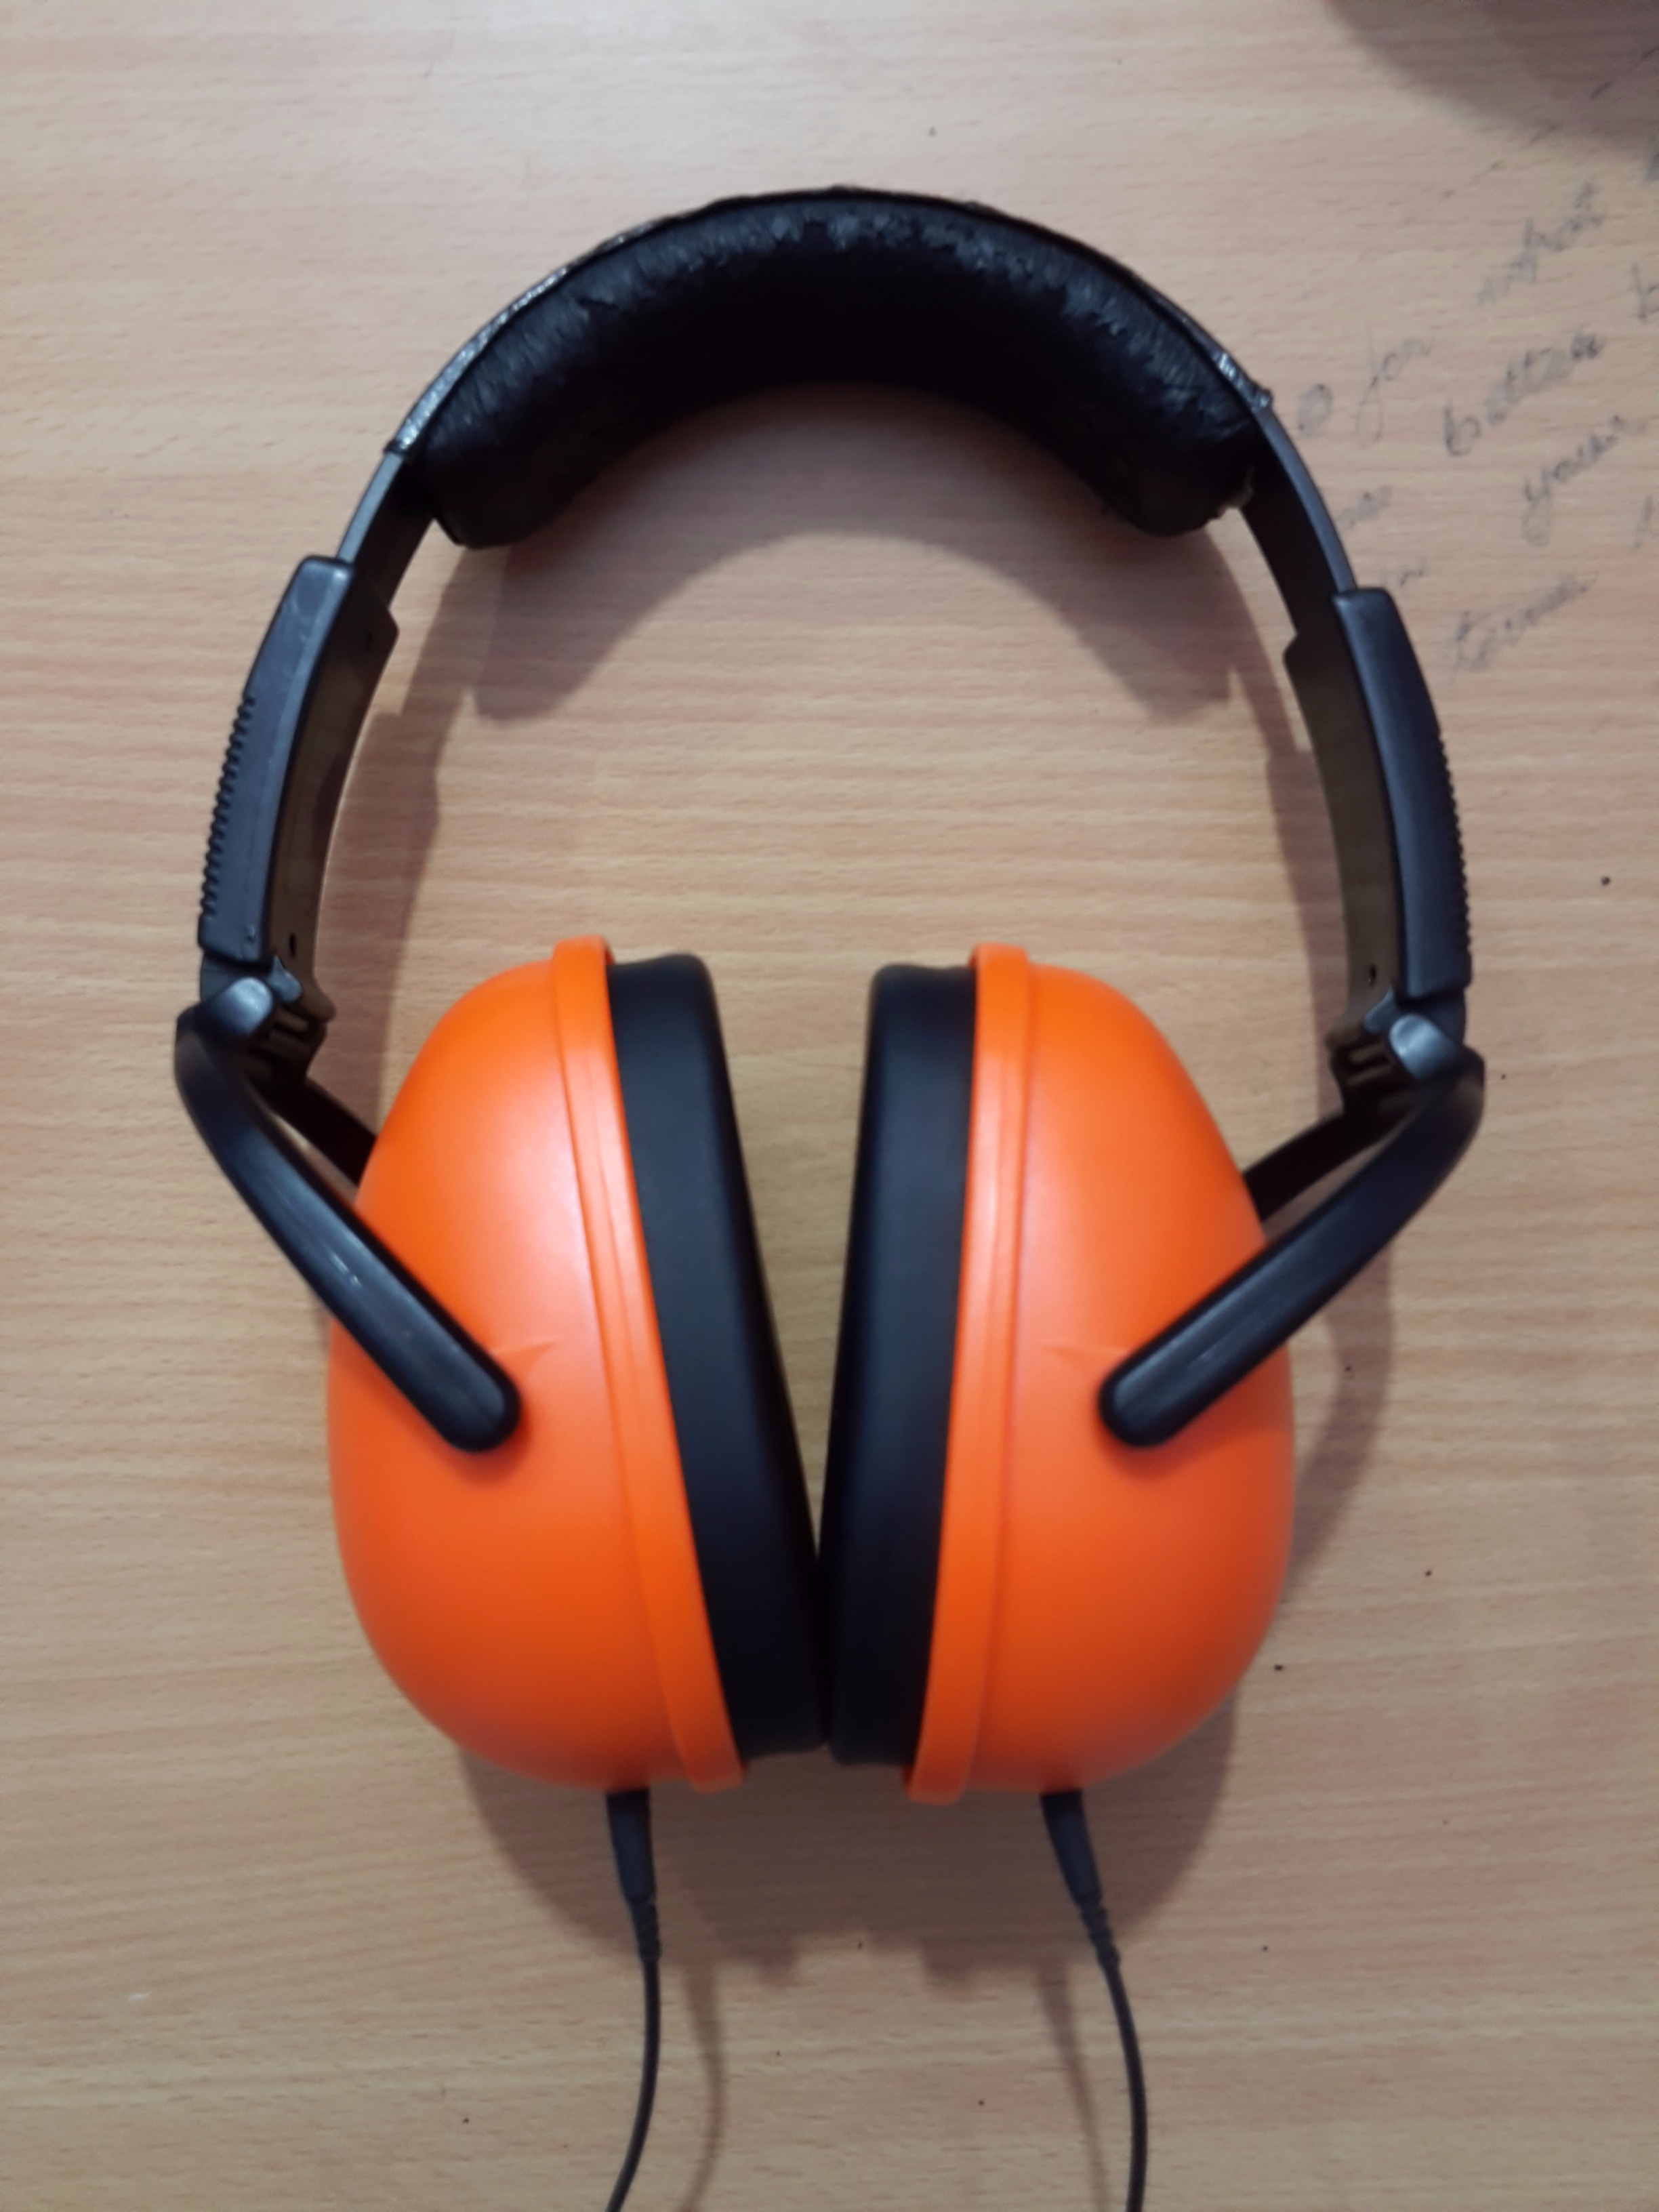 Picture of Sennheiser HD201 + Cheap Earmuffs = Perfectly Noise Proof Flat Natural Headphones & CHEAP Too!